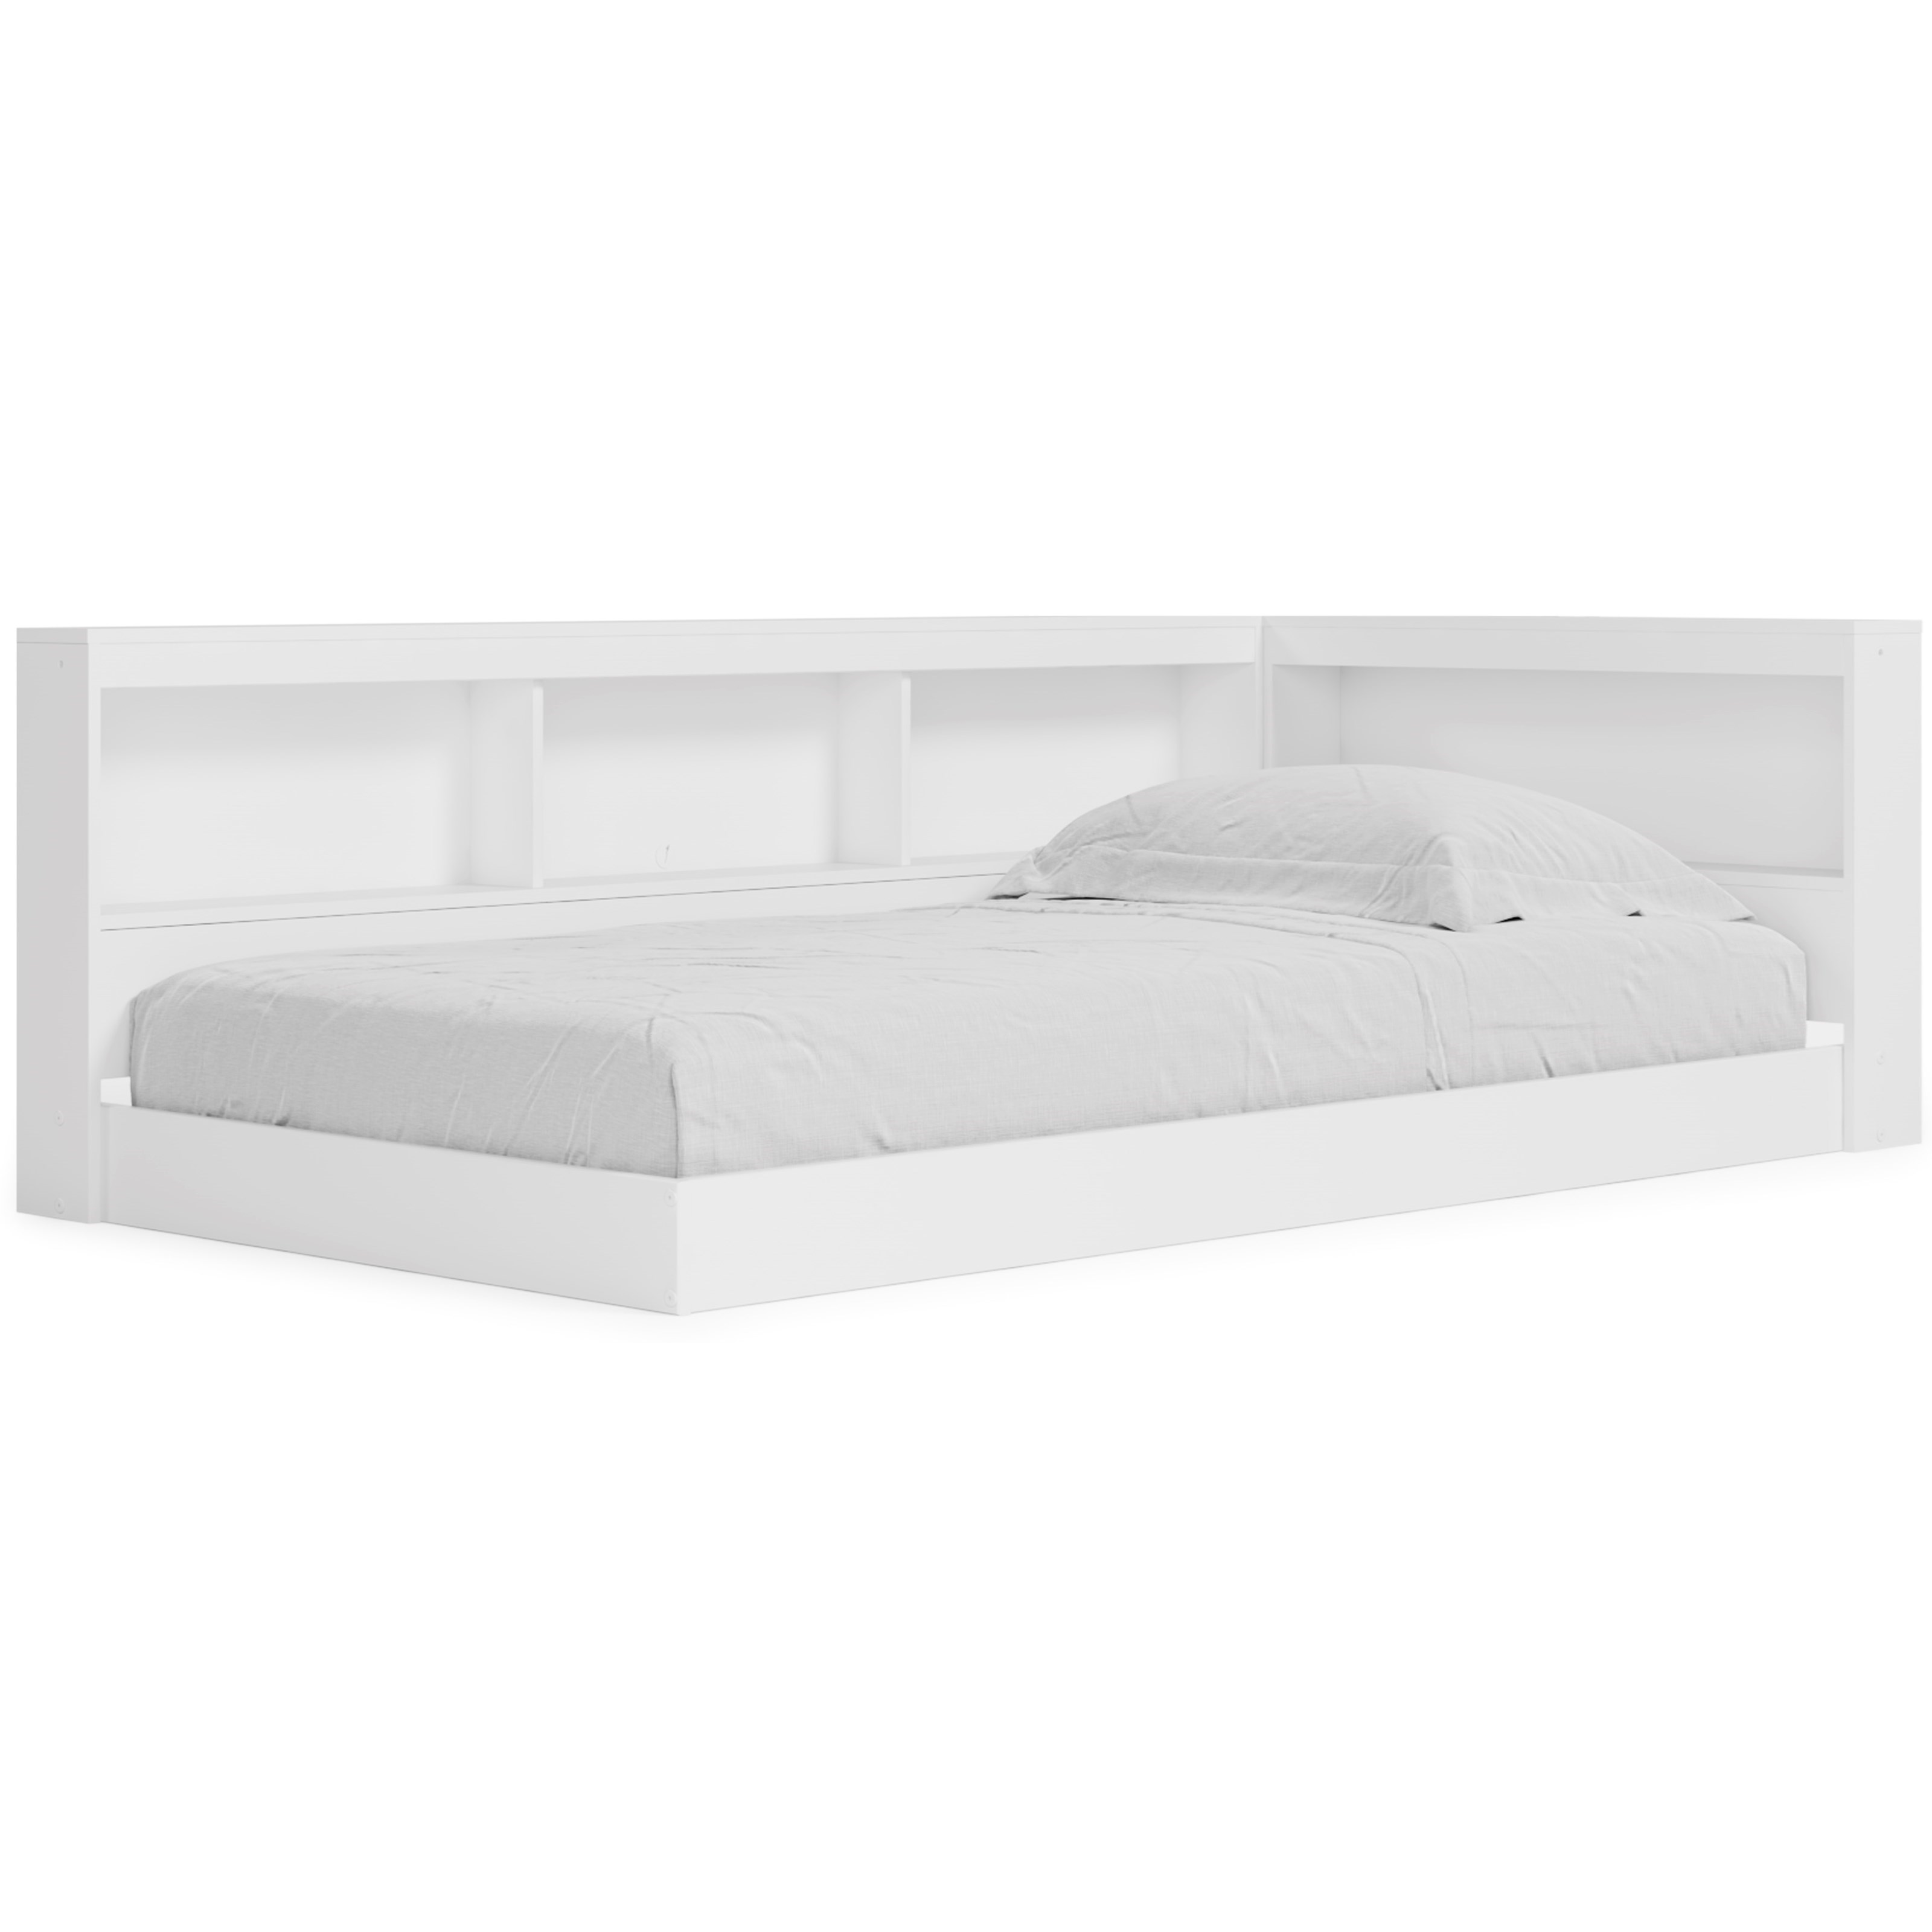 Piperton Twin Bookcase Storage Bed by Signature Design by Ashley at Northeast Factory Direct